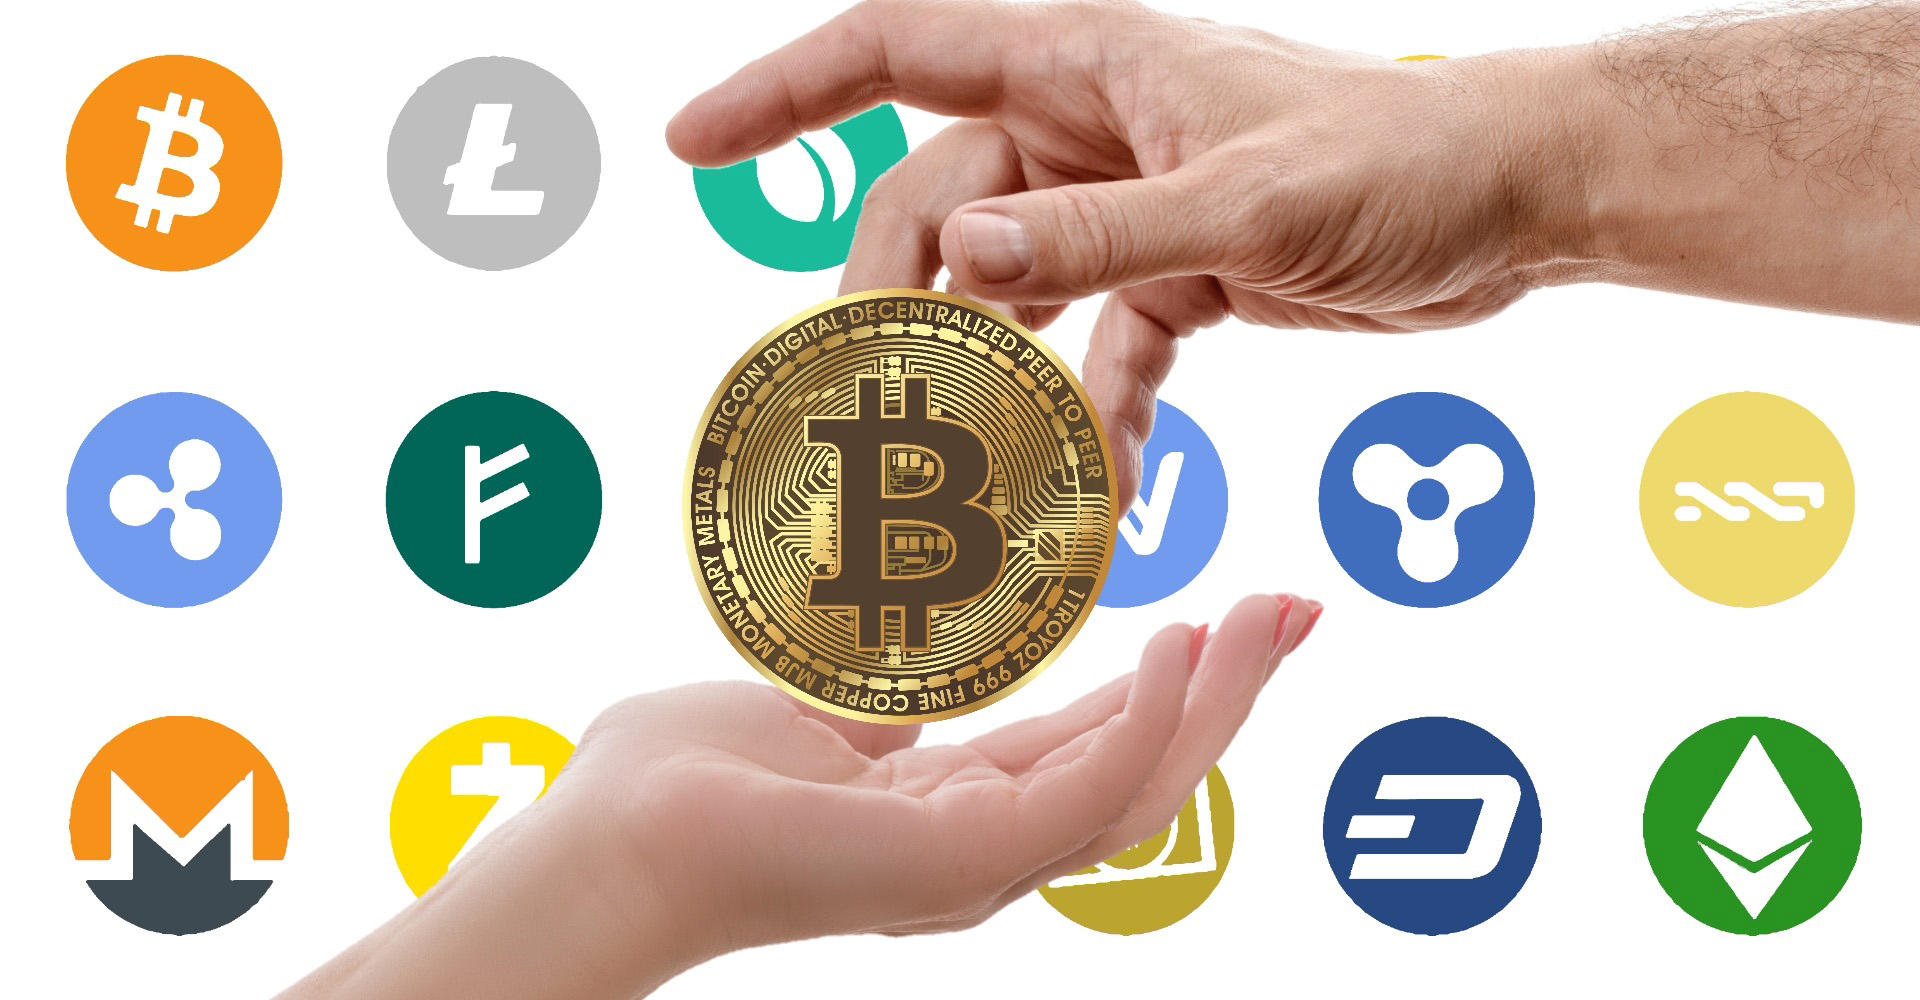 Cryptocurrencies logos and hand